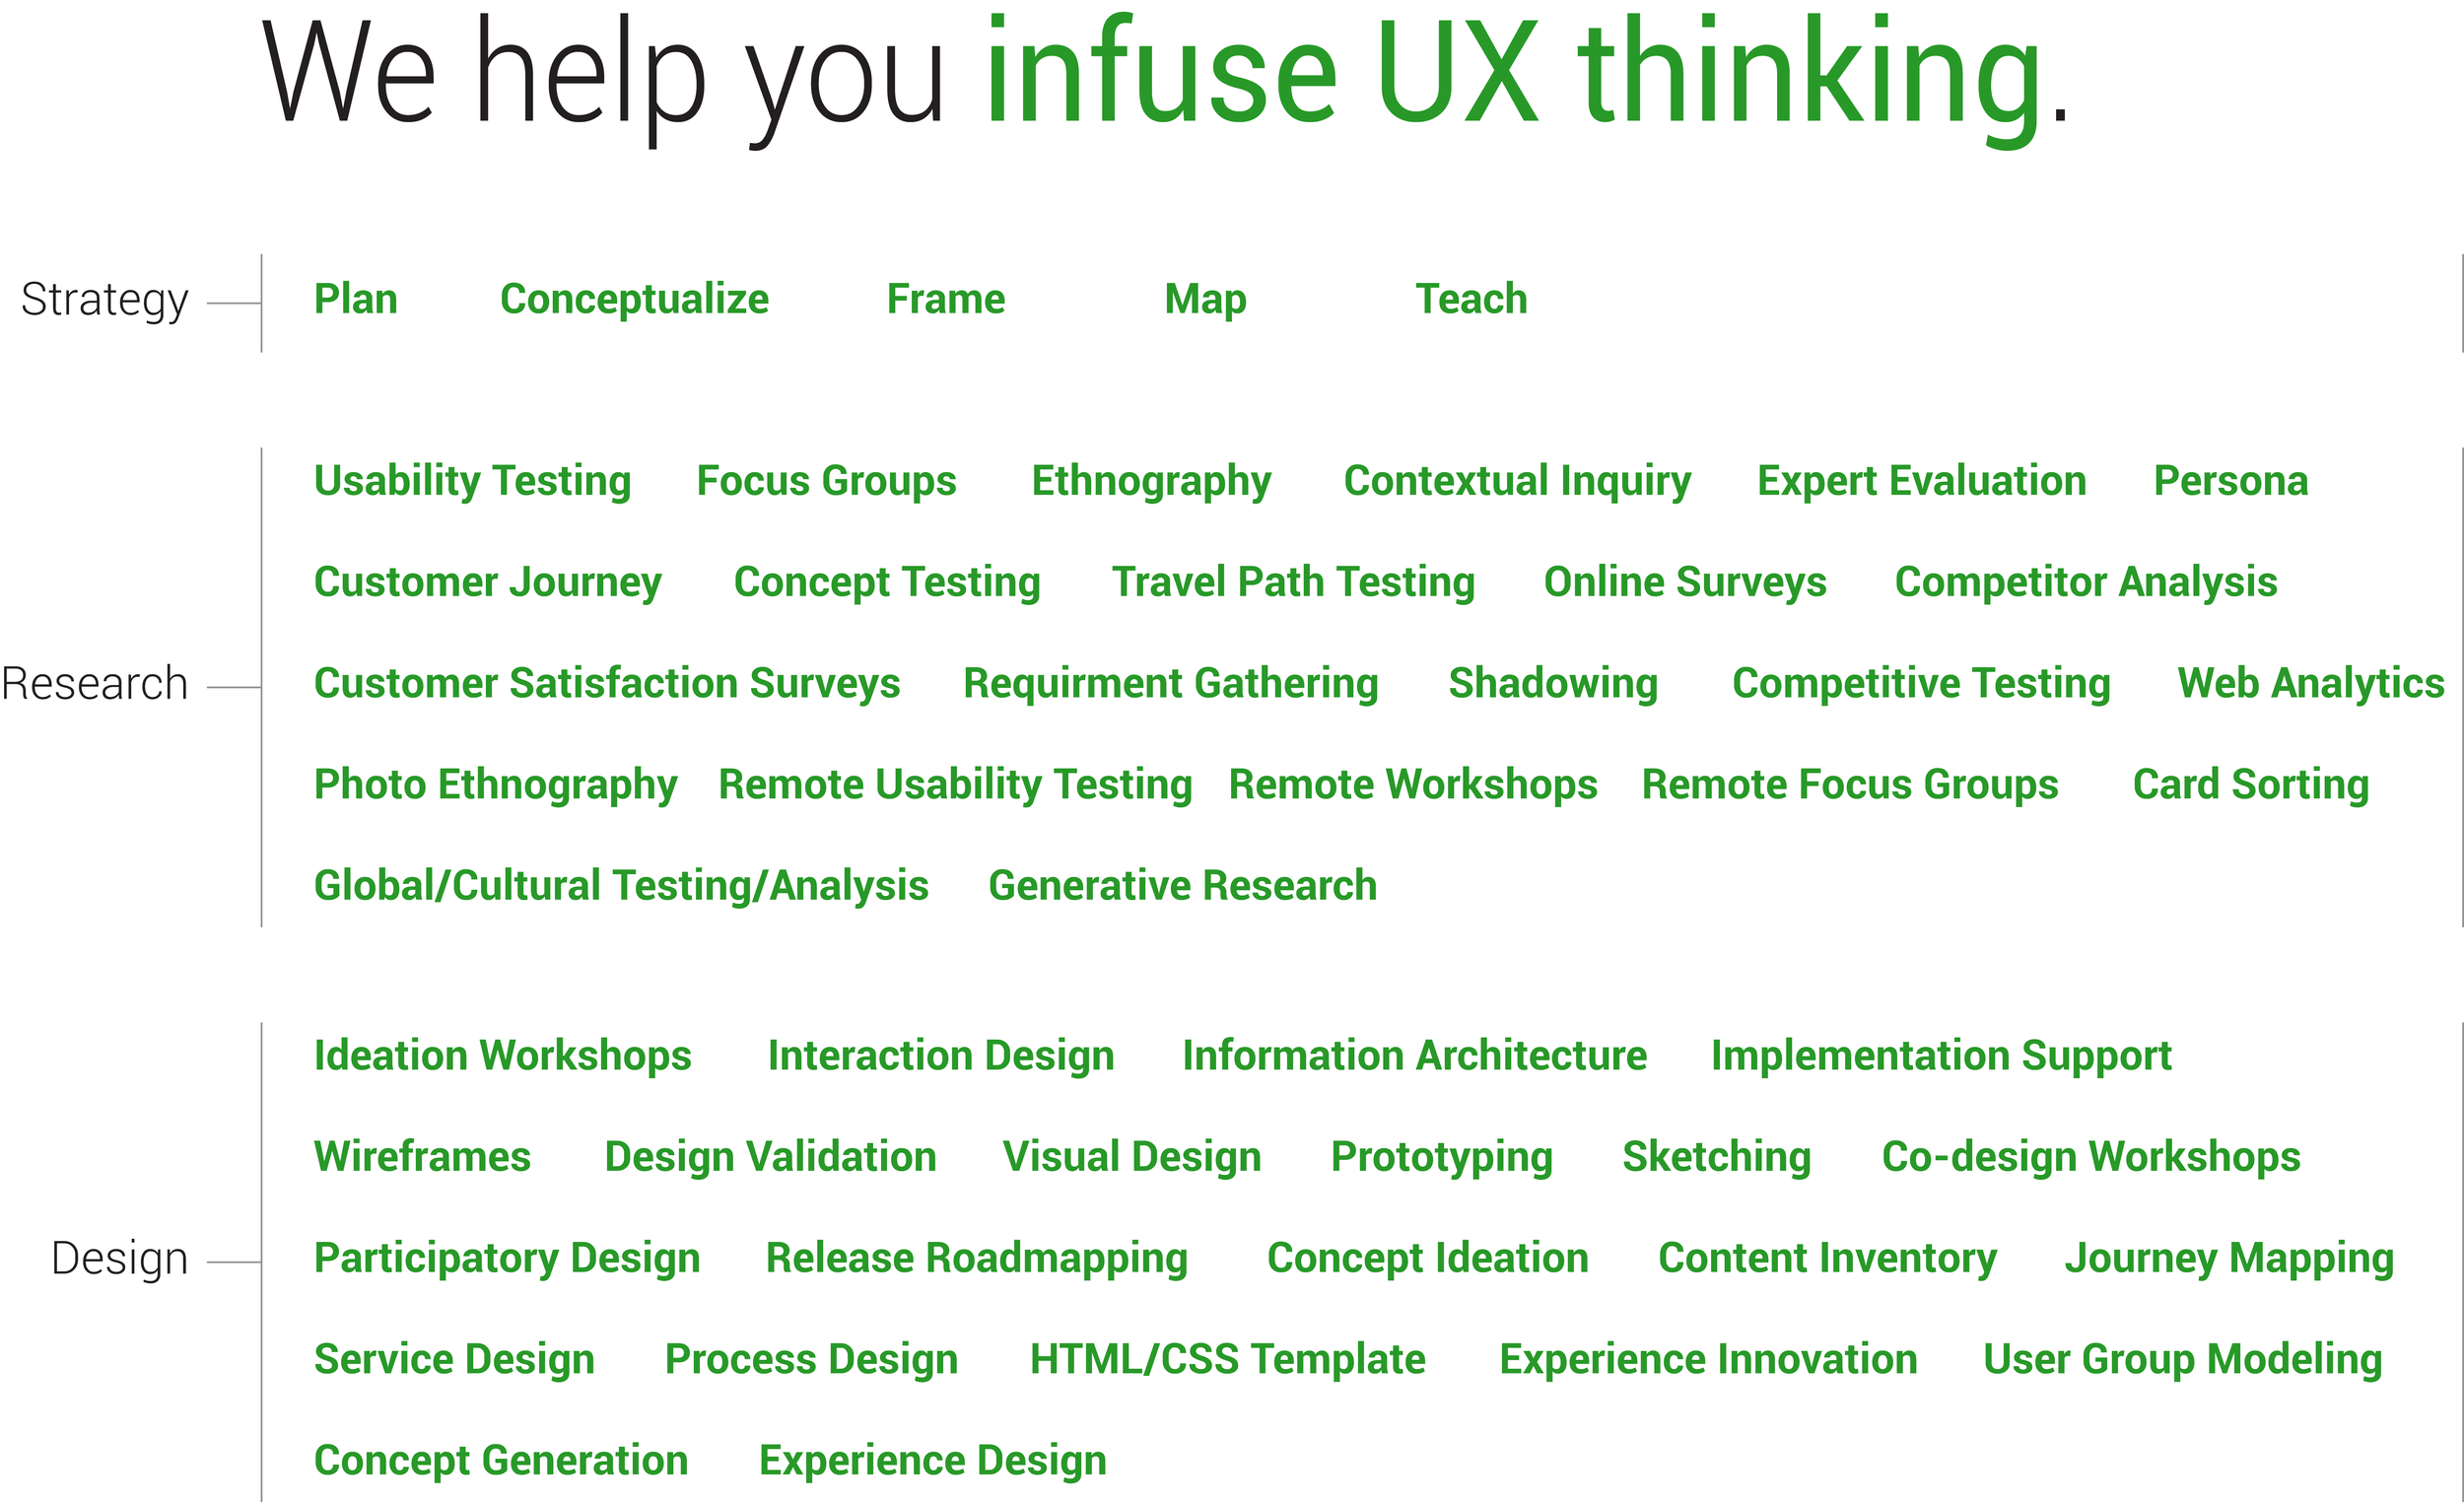 dynamic_strategy_page-practice_infuse UX thinking.png